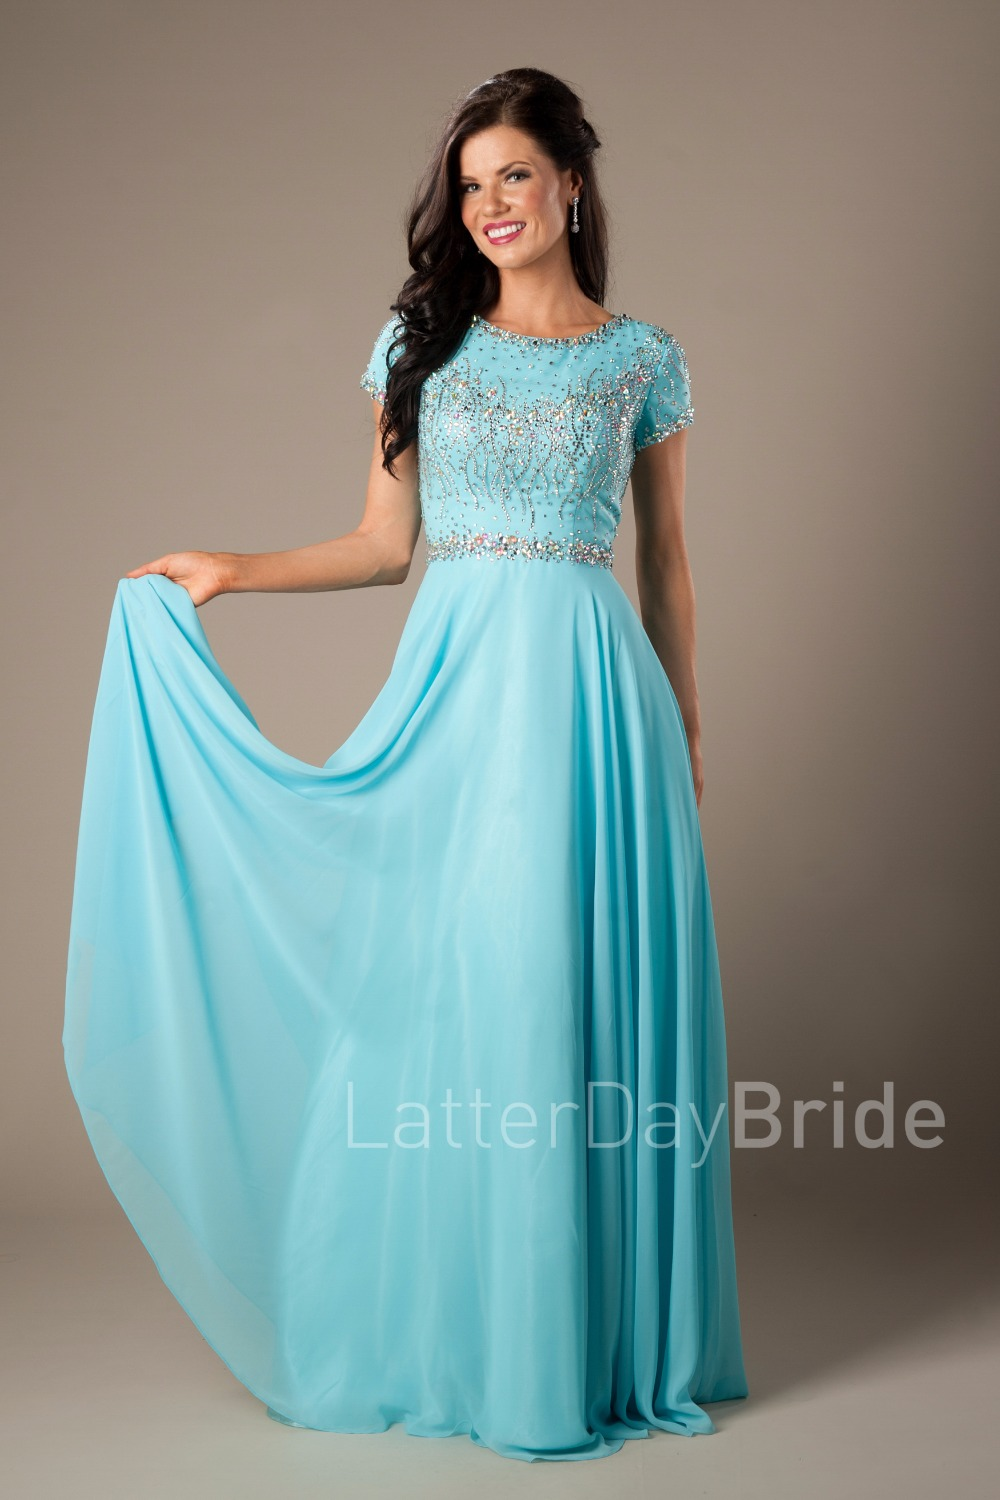 Old Fashioned Modest Evening Gowns Utah Festooning - Wedding and ...